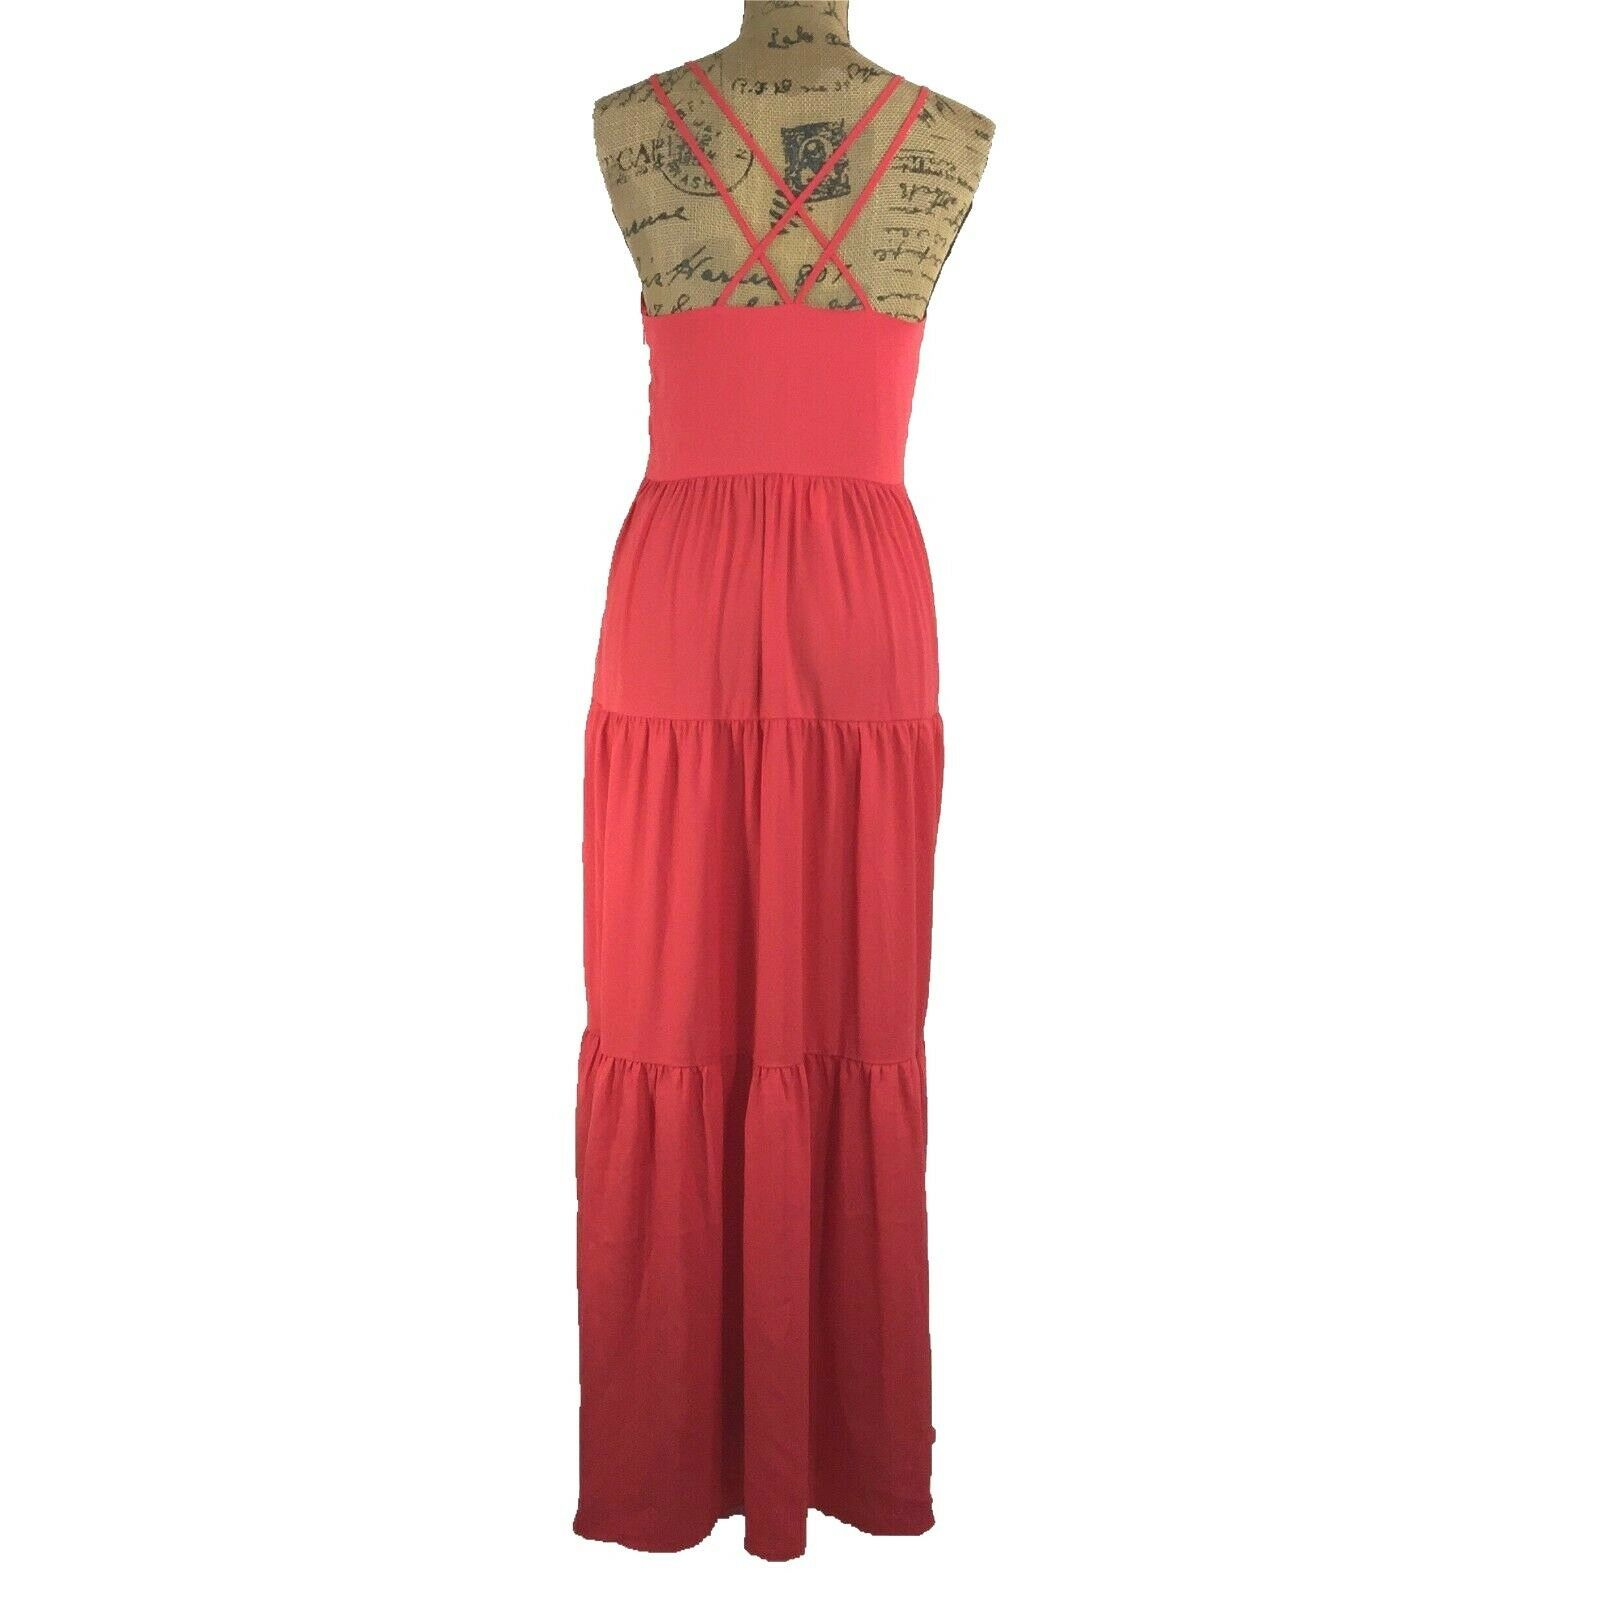 NWT Ann Taylor LOFT Maxi Dress 4 Sm Red Long Tier Strappy Open Back Sexy Party